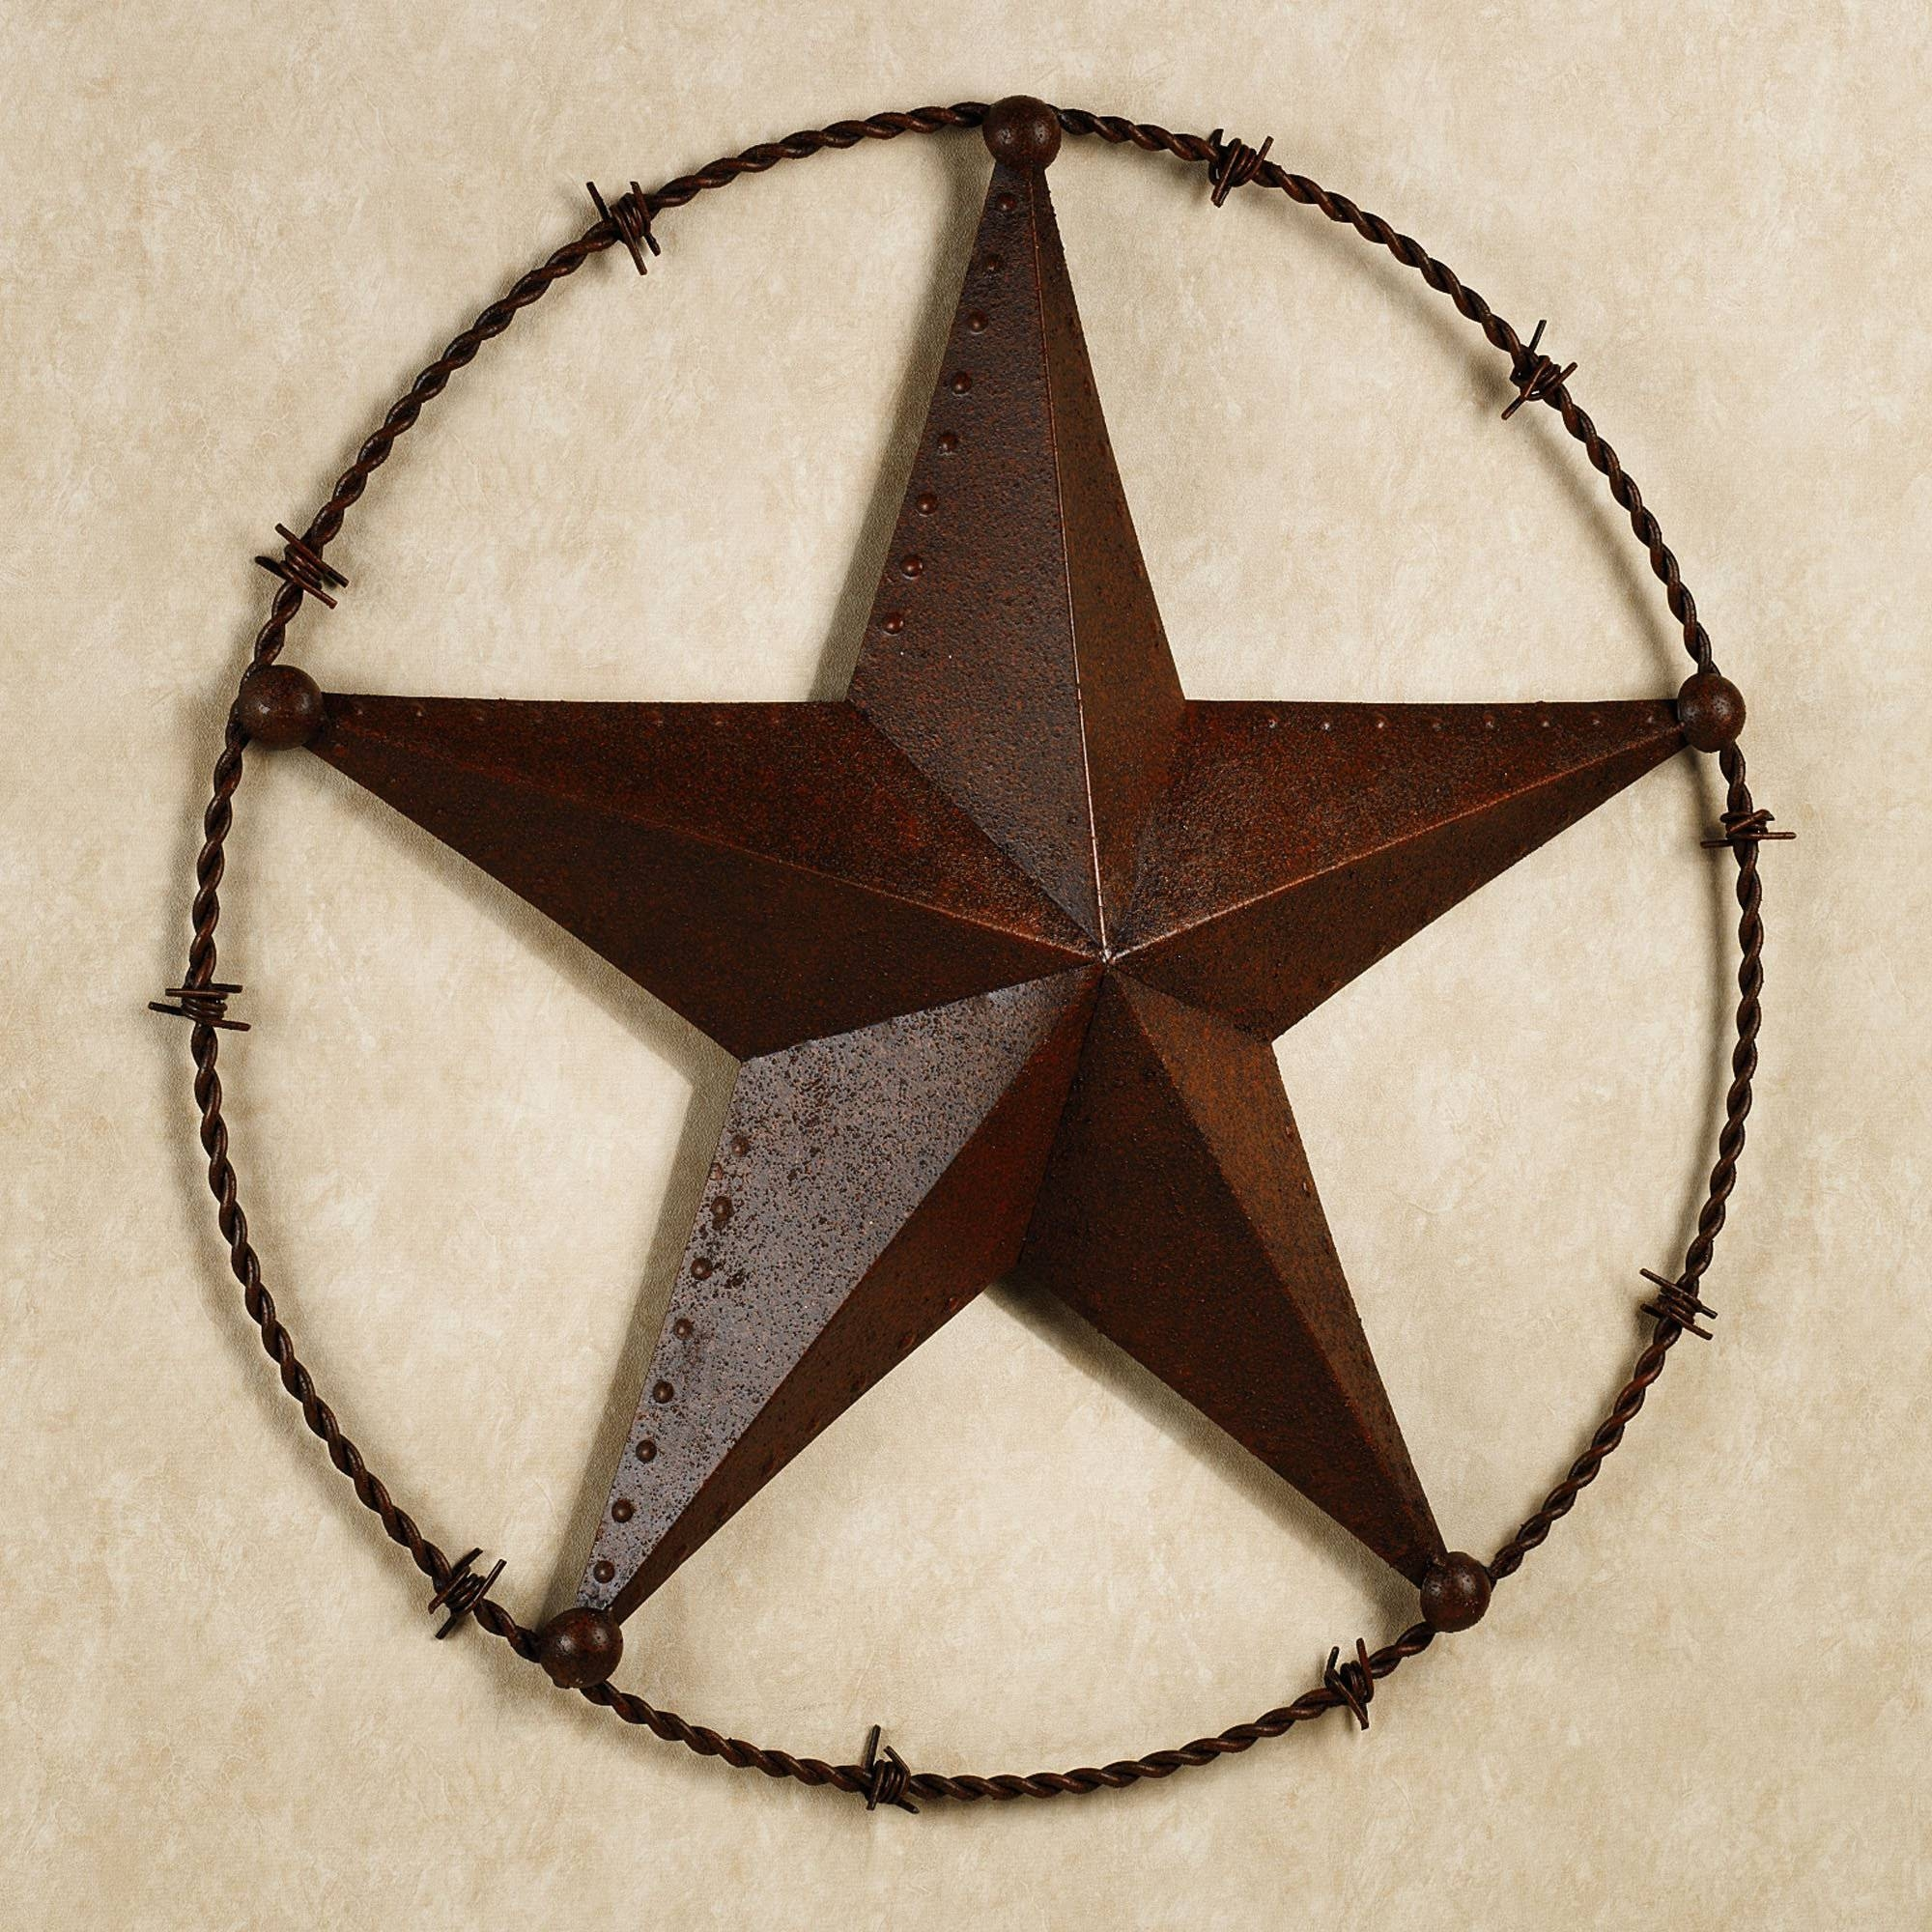 Fascinating Large Metal Star Wall Decoration 114 Large Metal Texas For Current Texas Star Metal Wall Art (View 2 of 20)